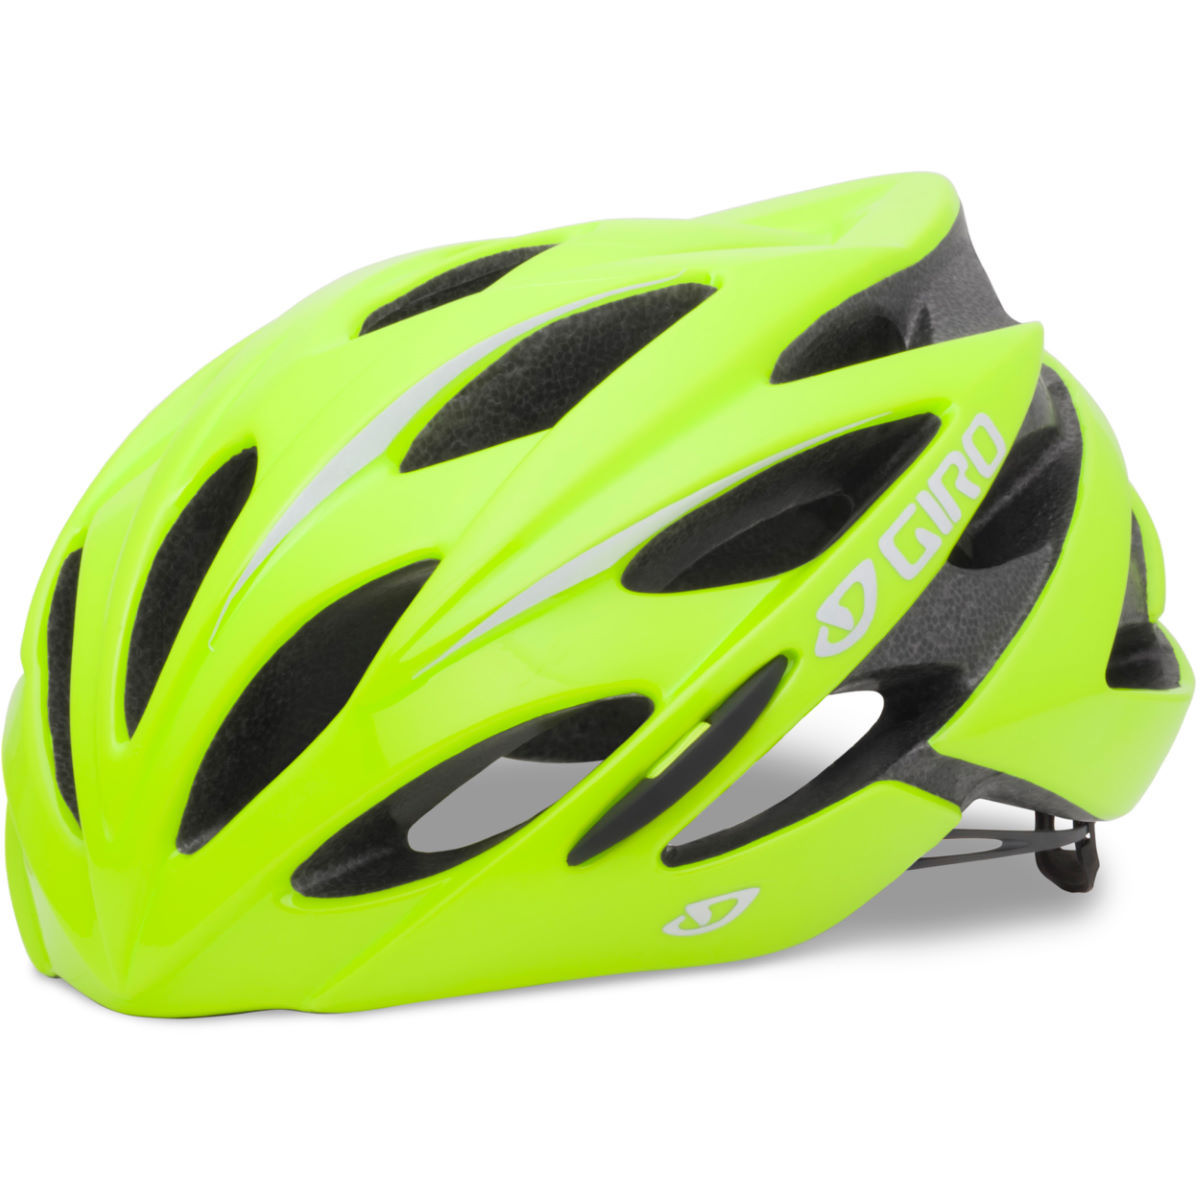 Giro Savant Road Helmet - Clearance in Red & Small